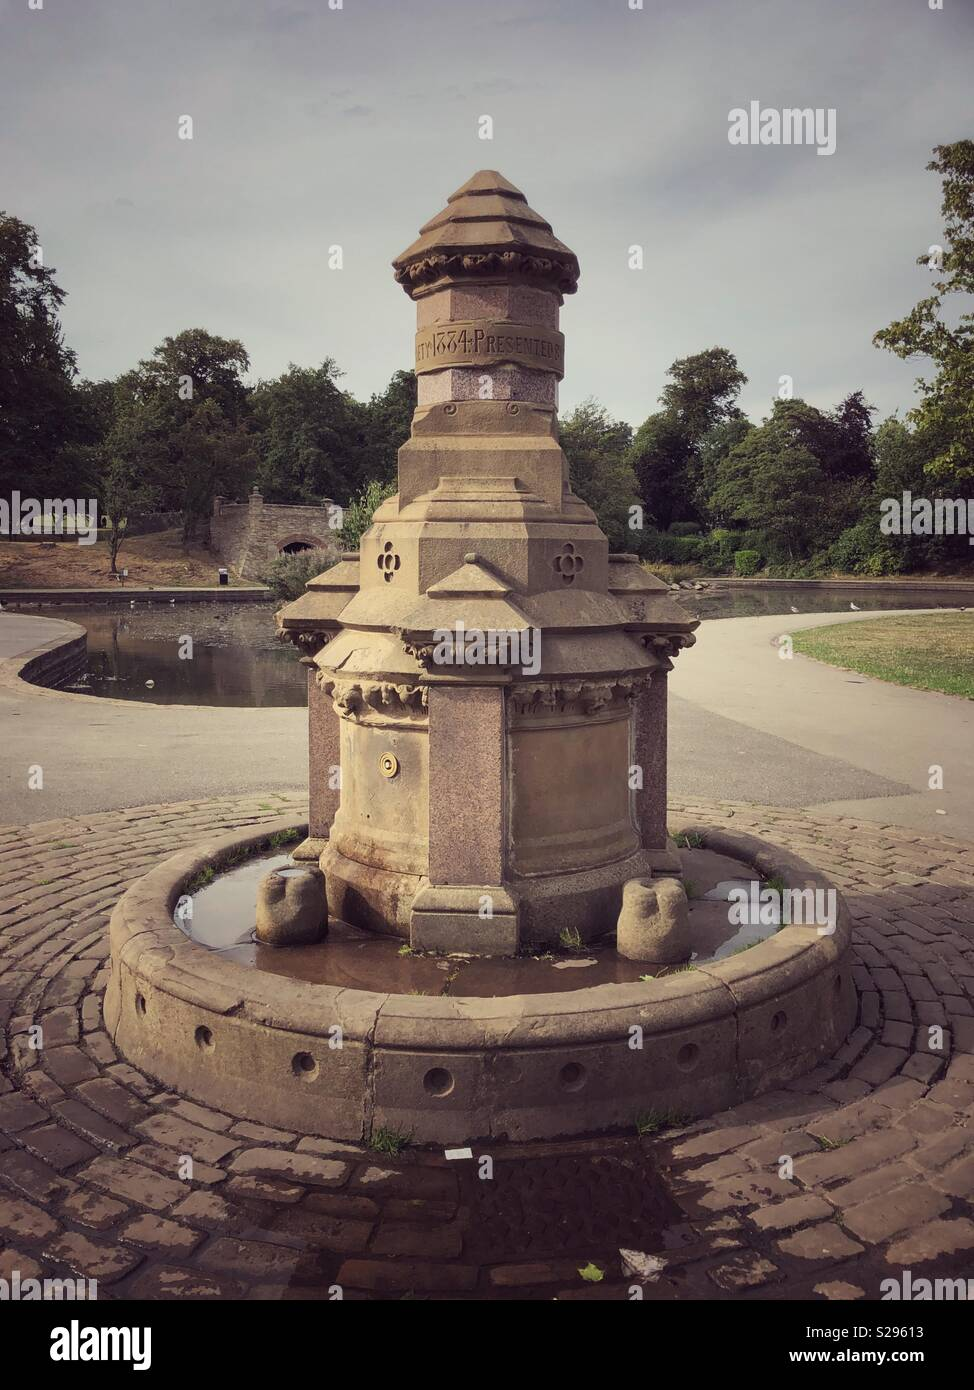 Old fashioned water fountain in Greenhead Park Huddersfield - Stock Image